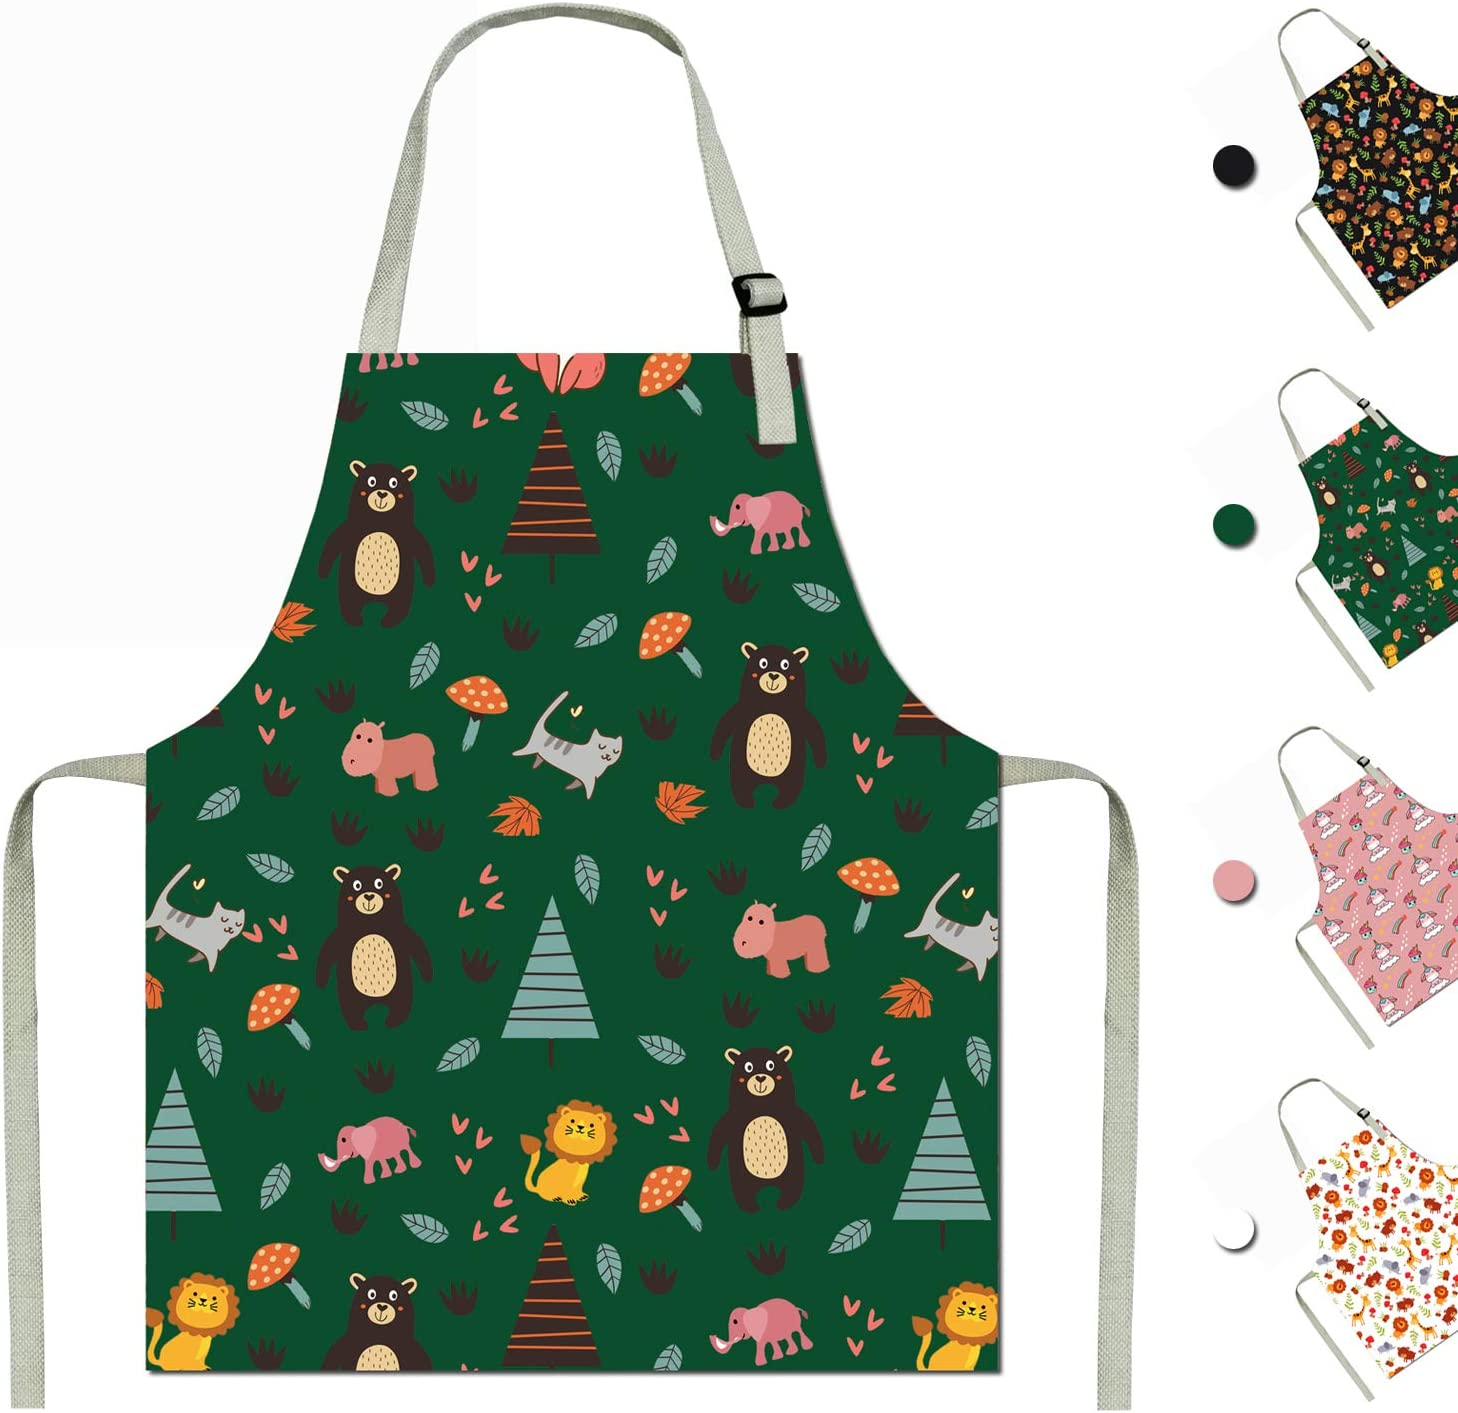 SOTOGO 2 Pack Child Apron Kids Painting Art Apron Cotton Apron for Toddlers Age 3-5